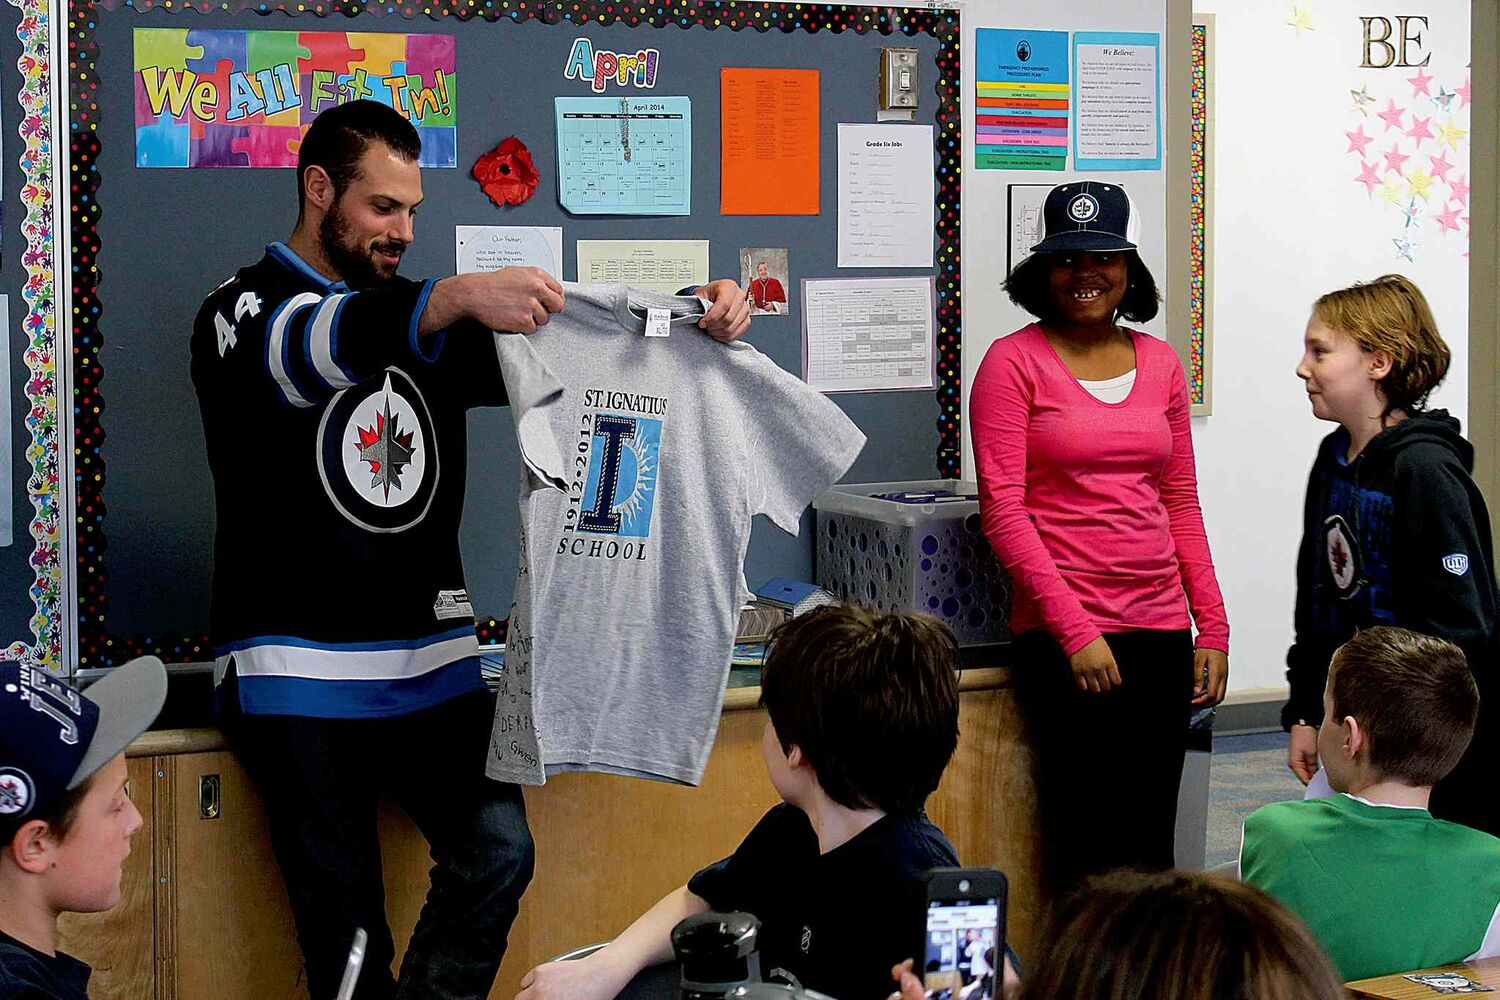 Winnipeg Jets defenceman Zach Bogosian checks out a t-shirt presented to him by a class of sixth grade students. Bogosian paid a visit to students at St. Ignatius School as a reward for winning the Classroom Recycling Challenge.